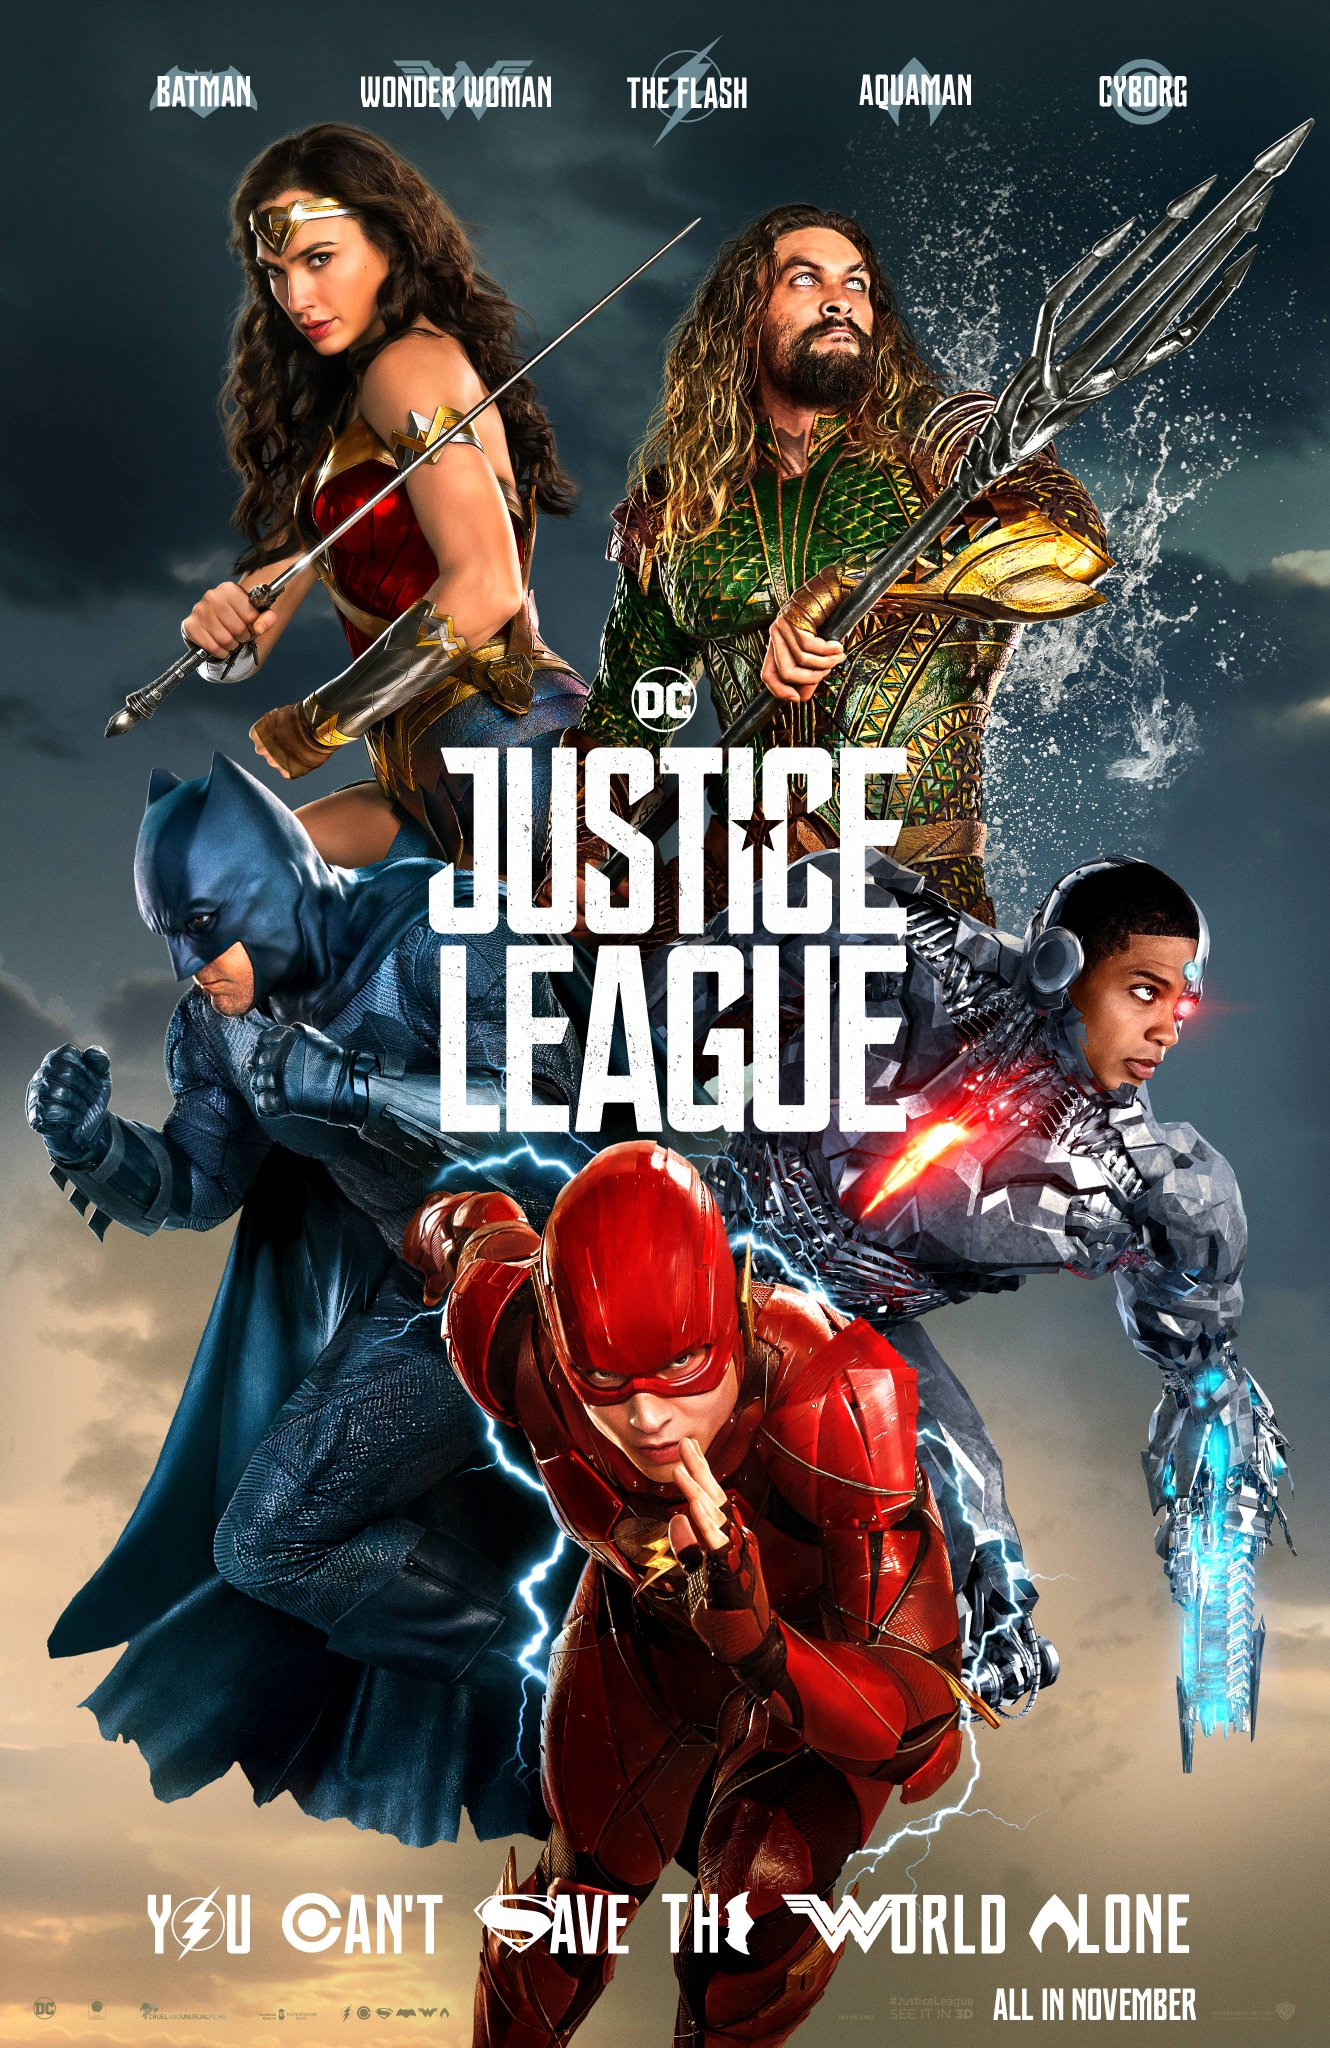 After Joss Whedon Reshoots, Justice League Runtime Now 50 Minutes Shorter - Bleeding Cool News And Rumors